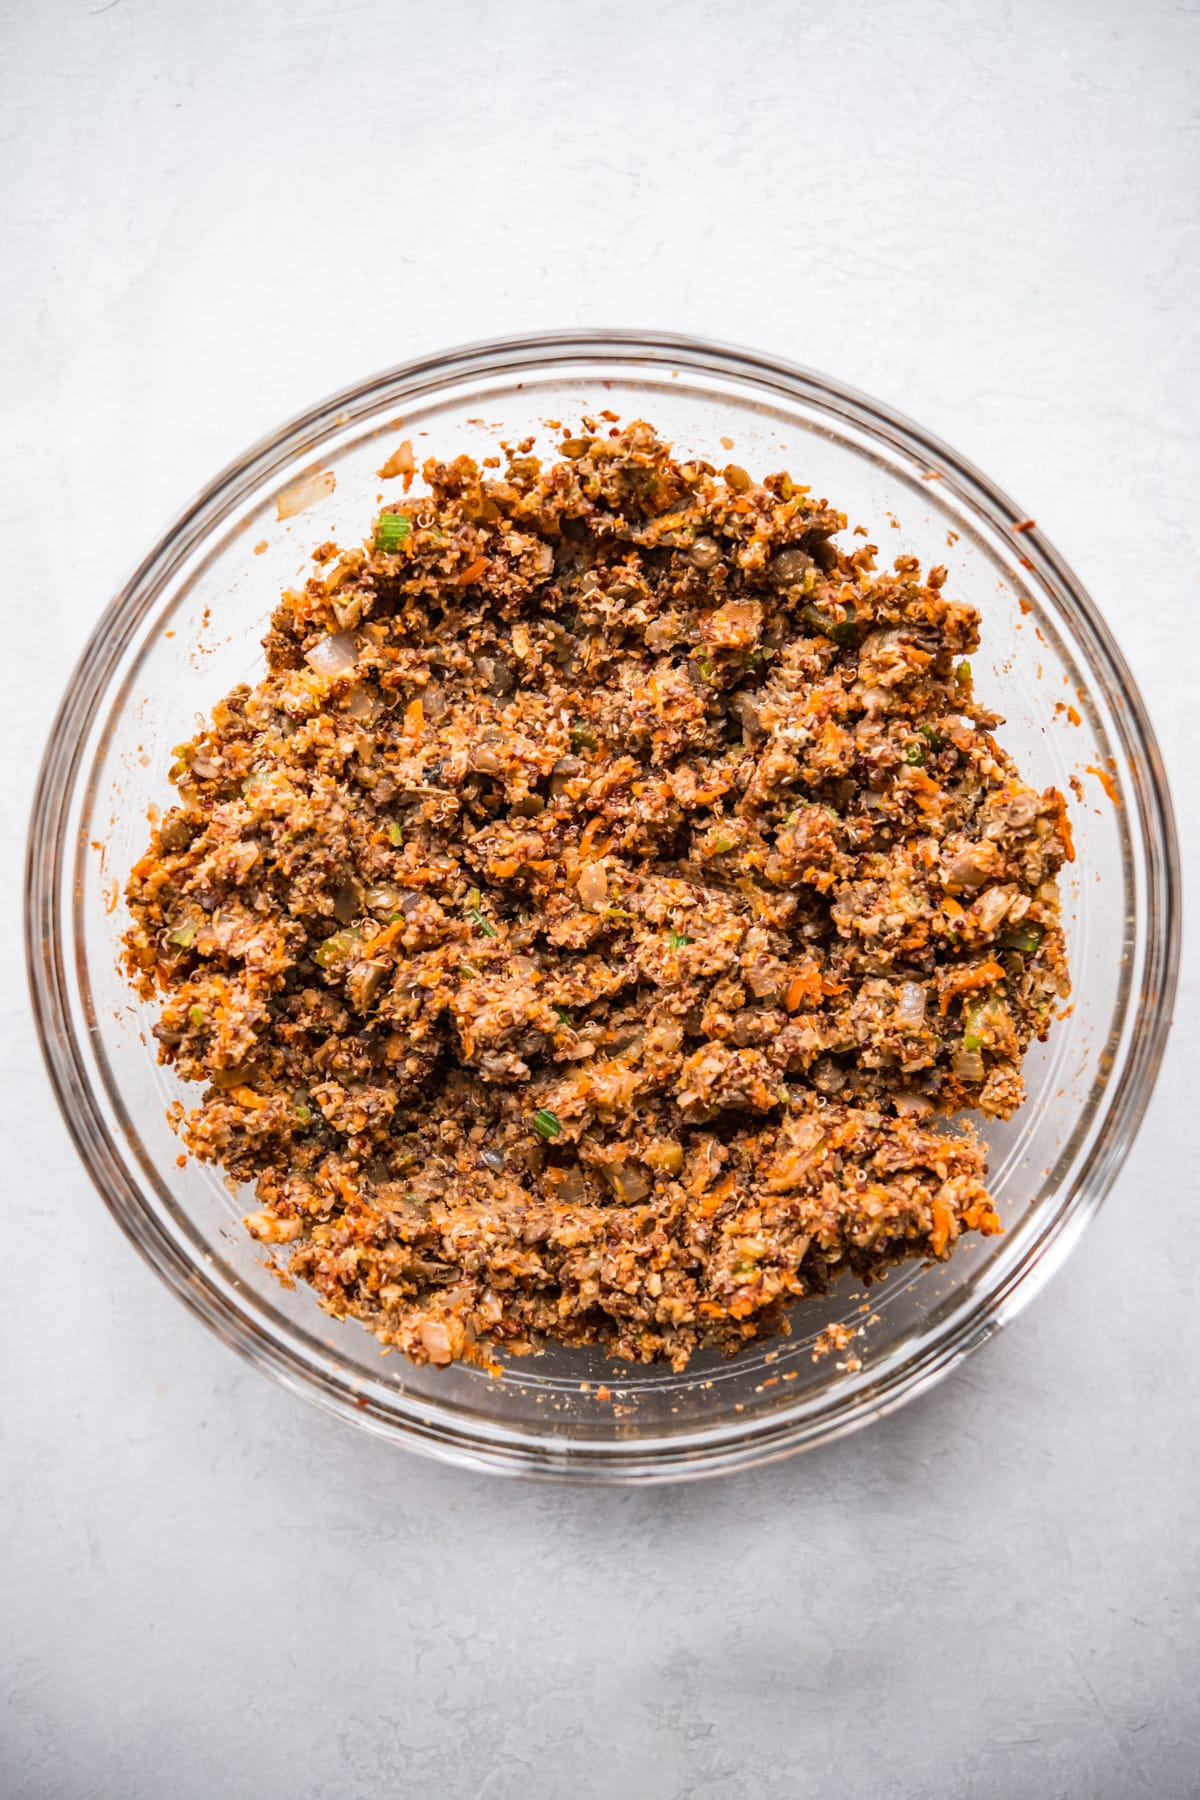 Glass bowl with ingredients for vegan meatloaf, mixed.